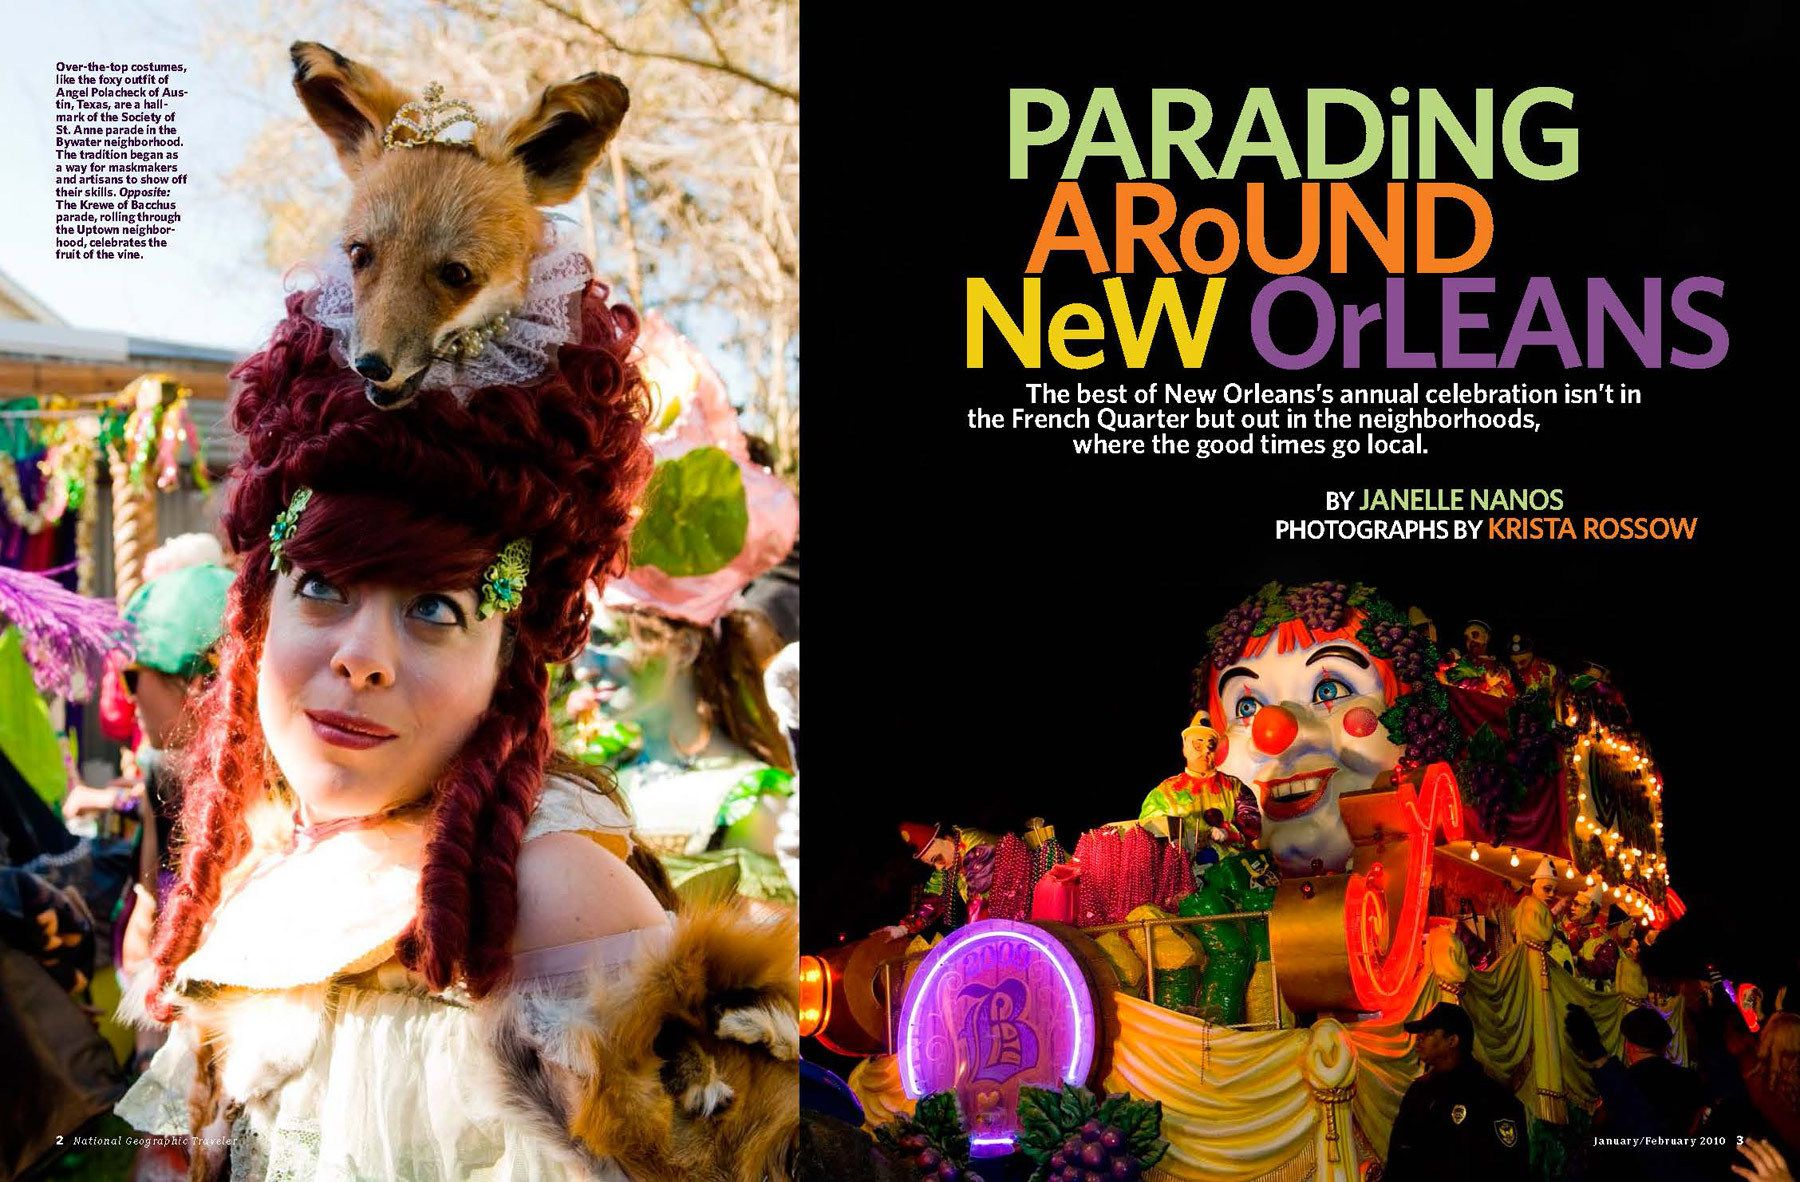 """Parading Around New Orleans"" feature story."